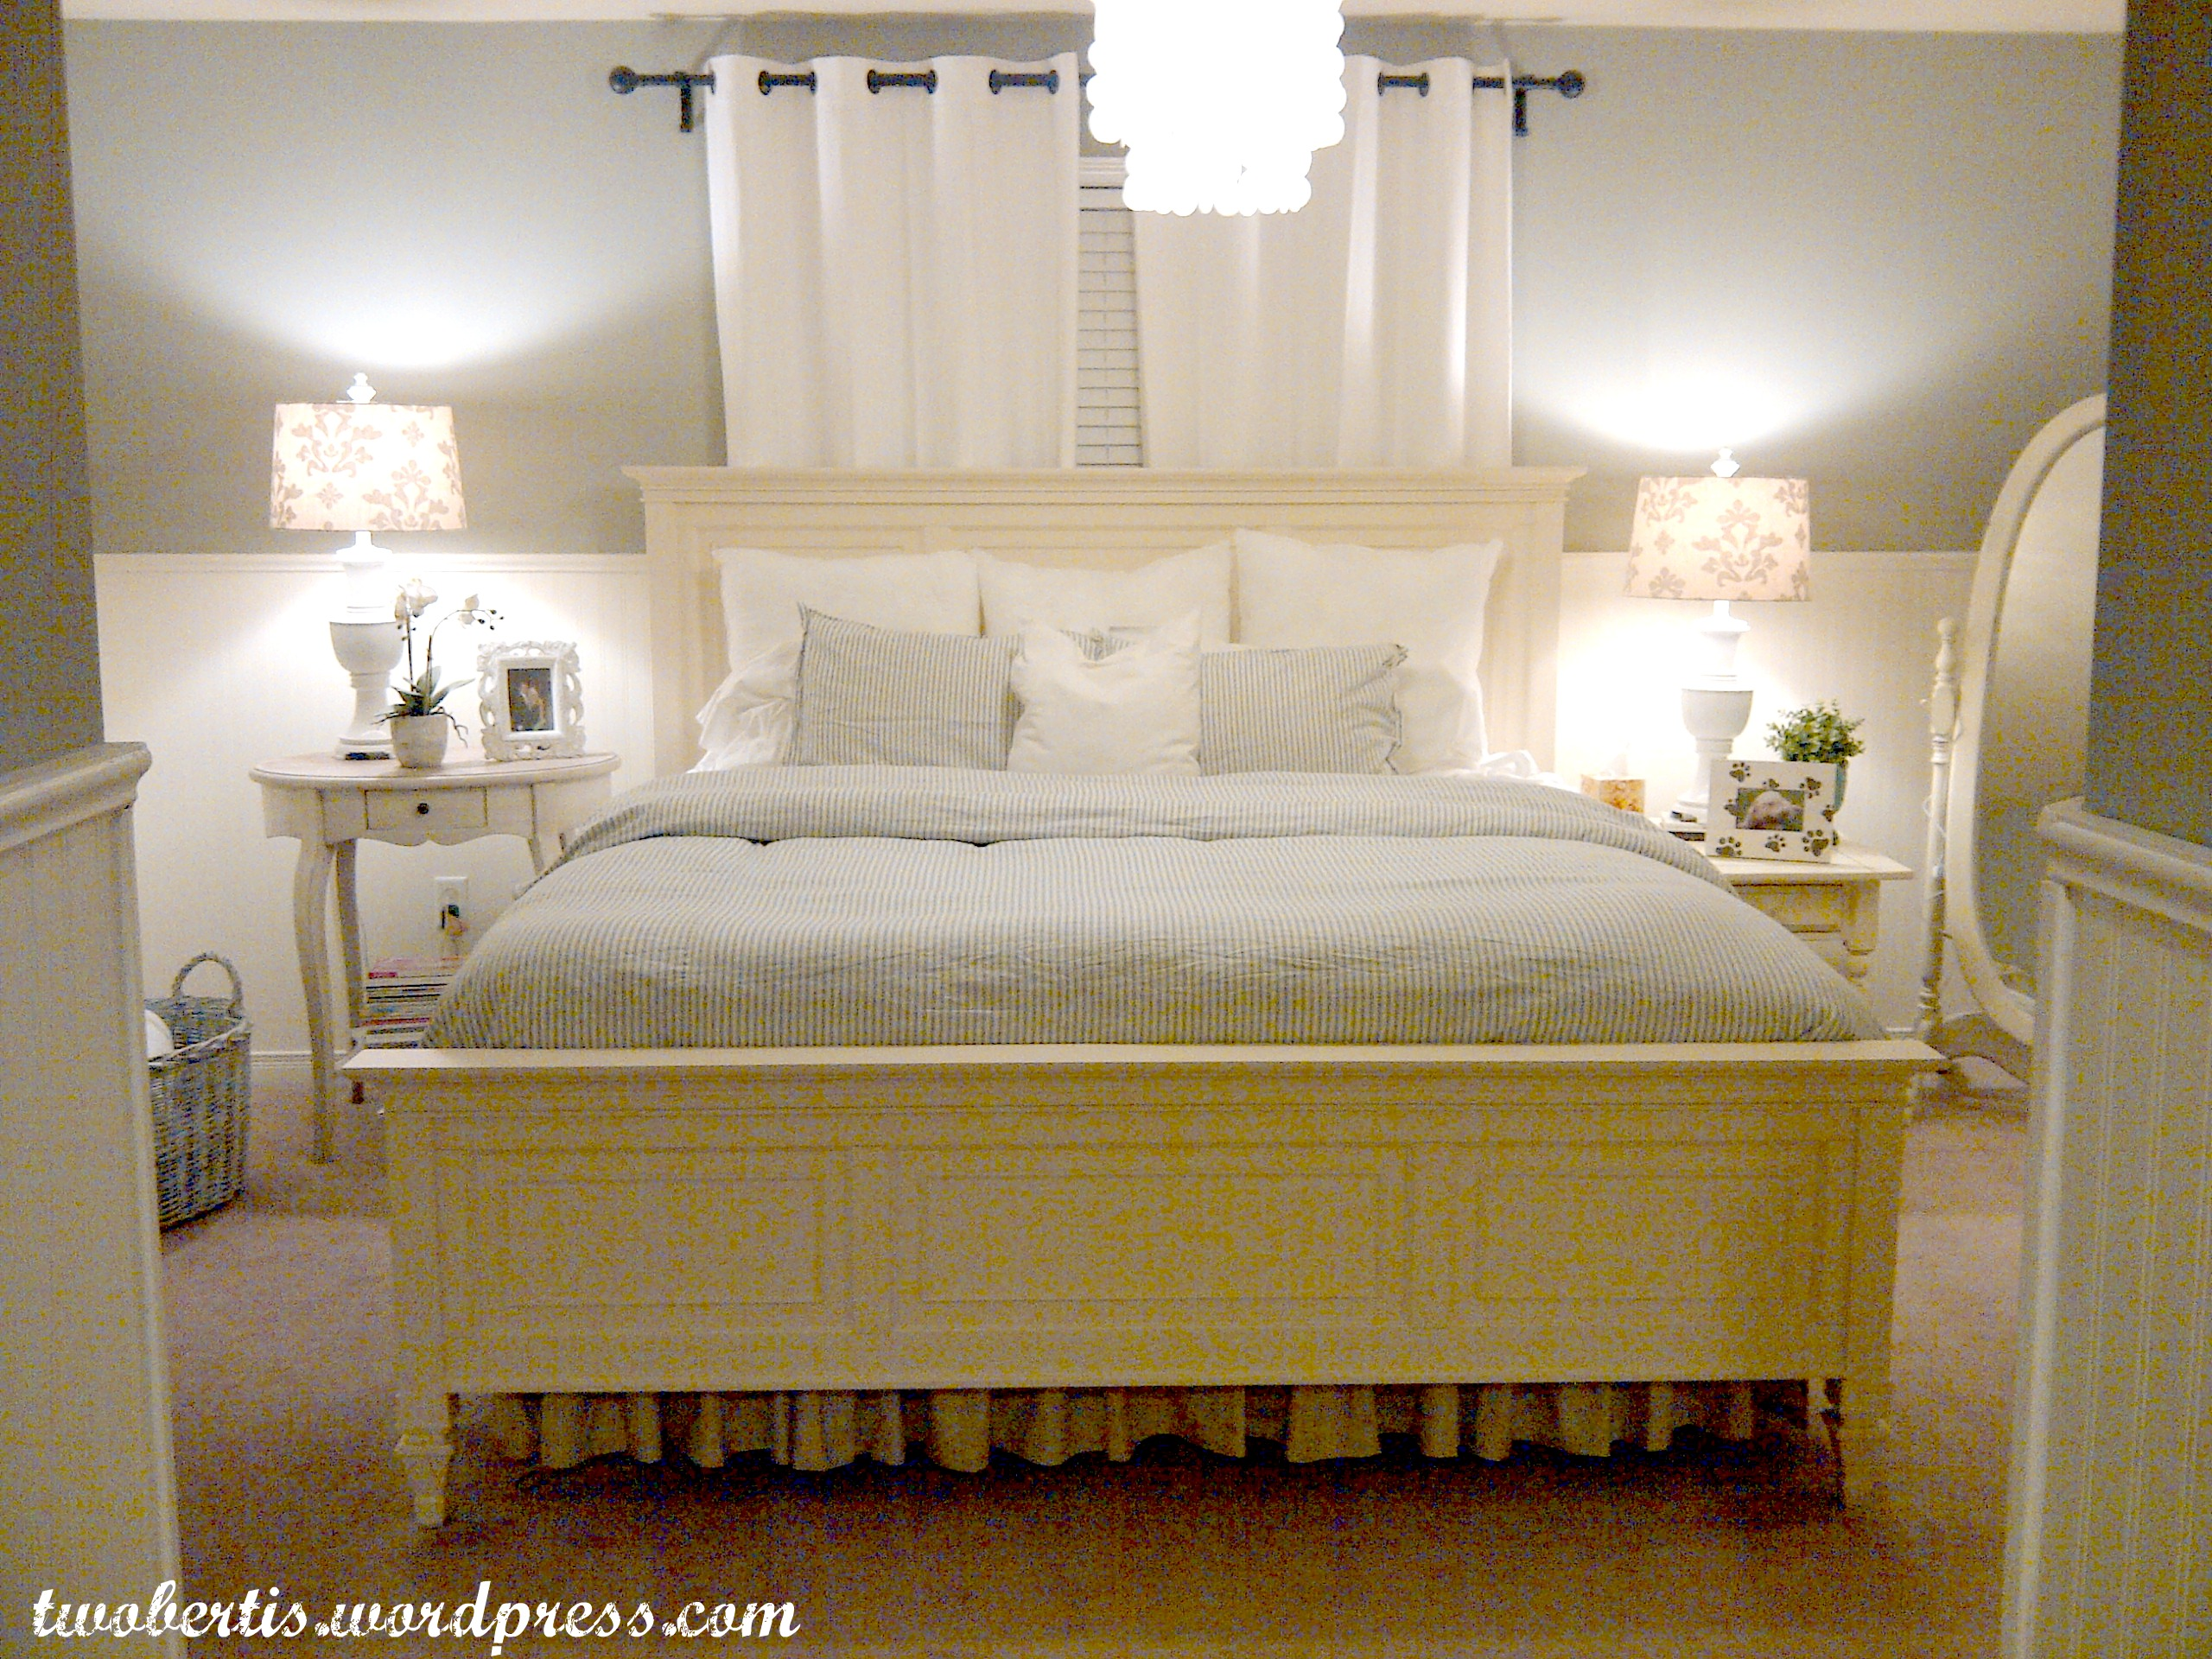 Pottery Barn Inspired Master Bedroom Makeover Diy